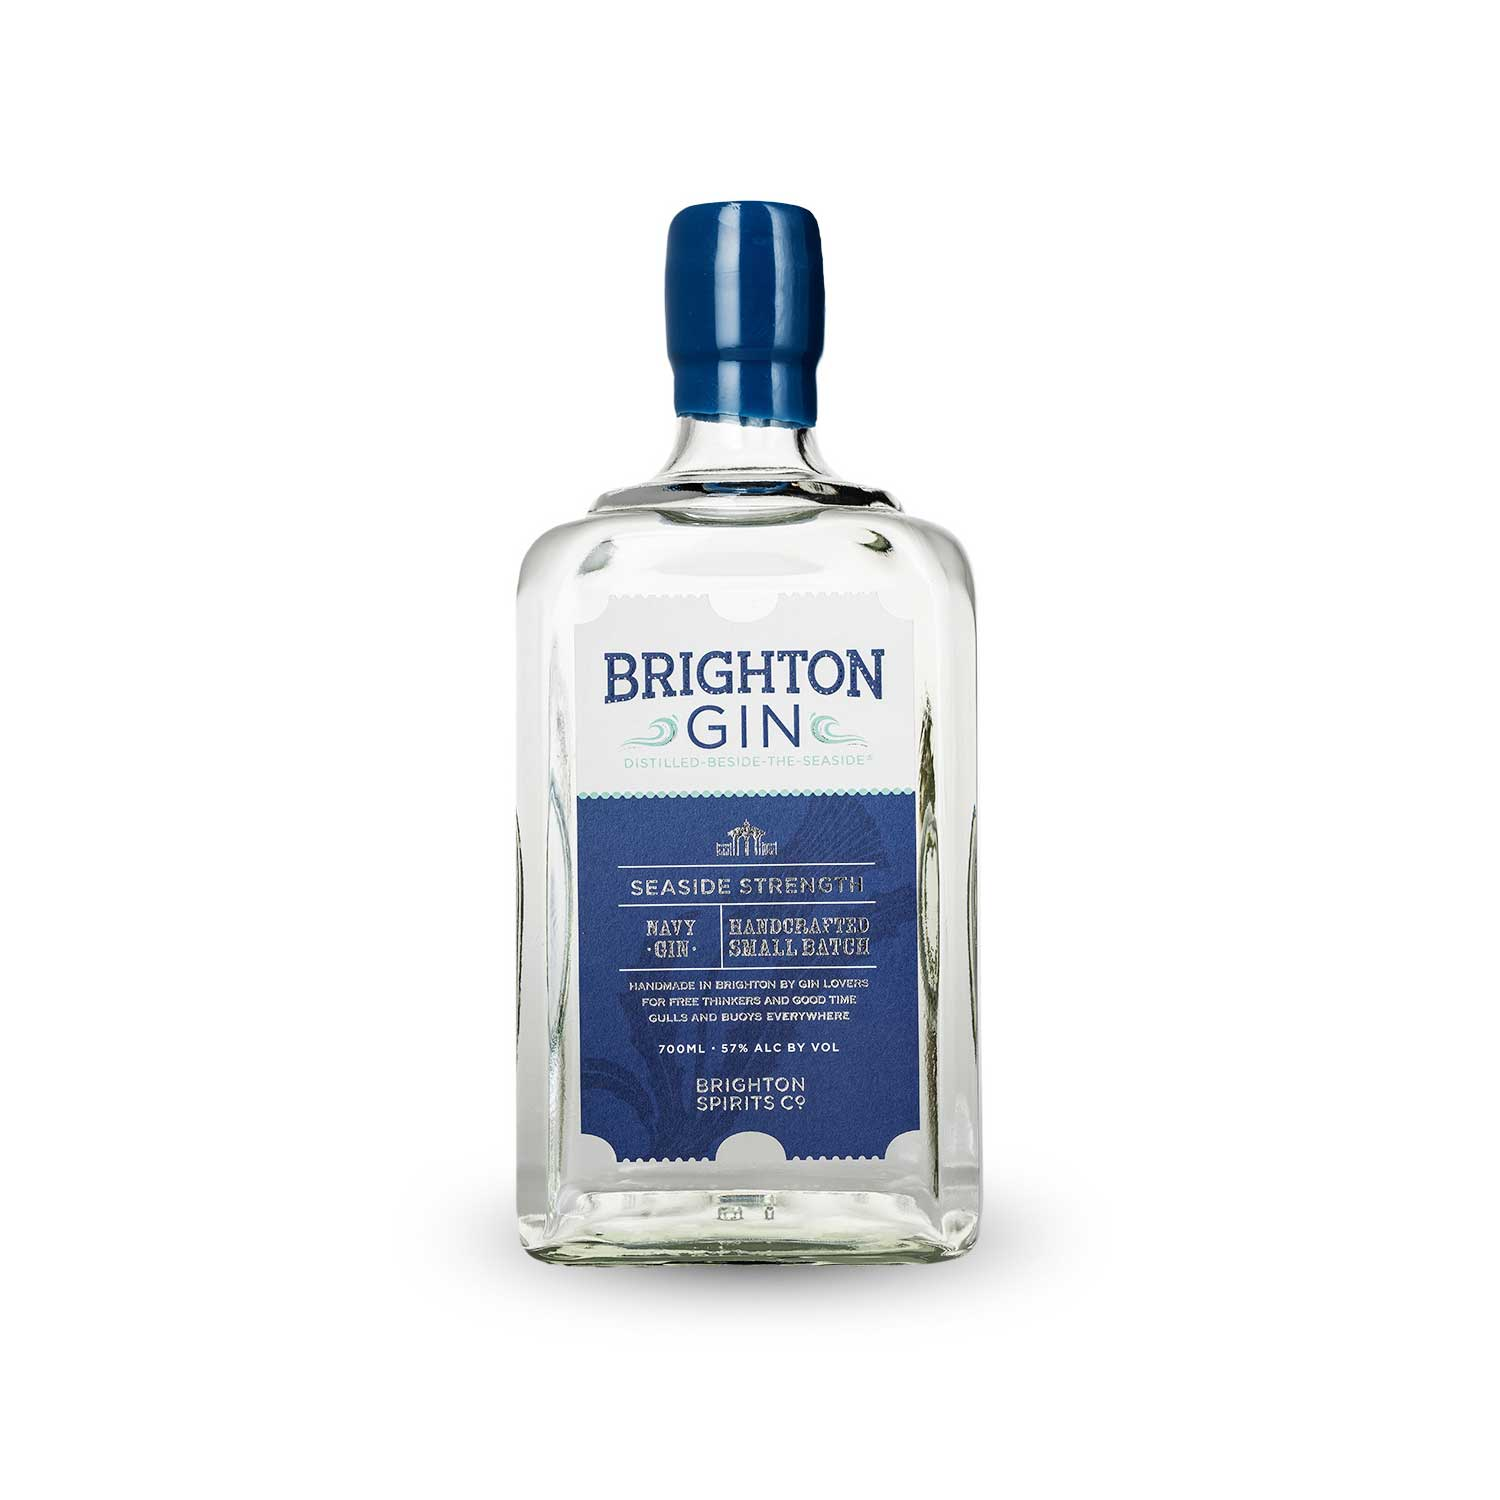 Brighton Gin Seaside Navy Strength Gin